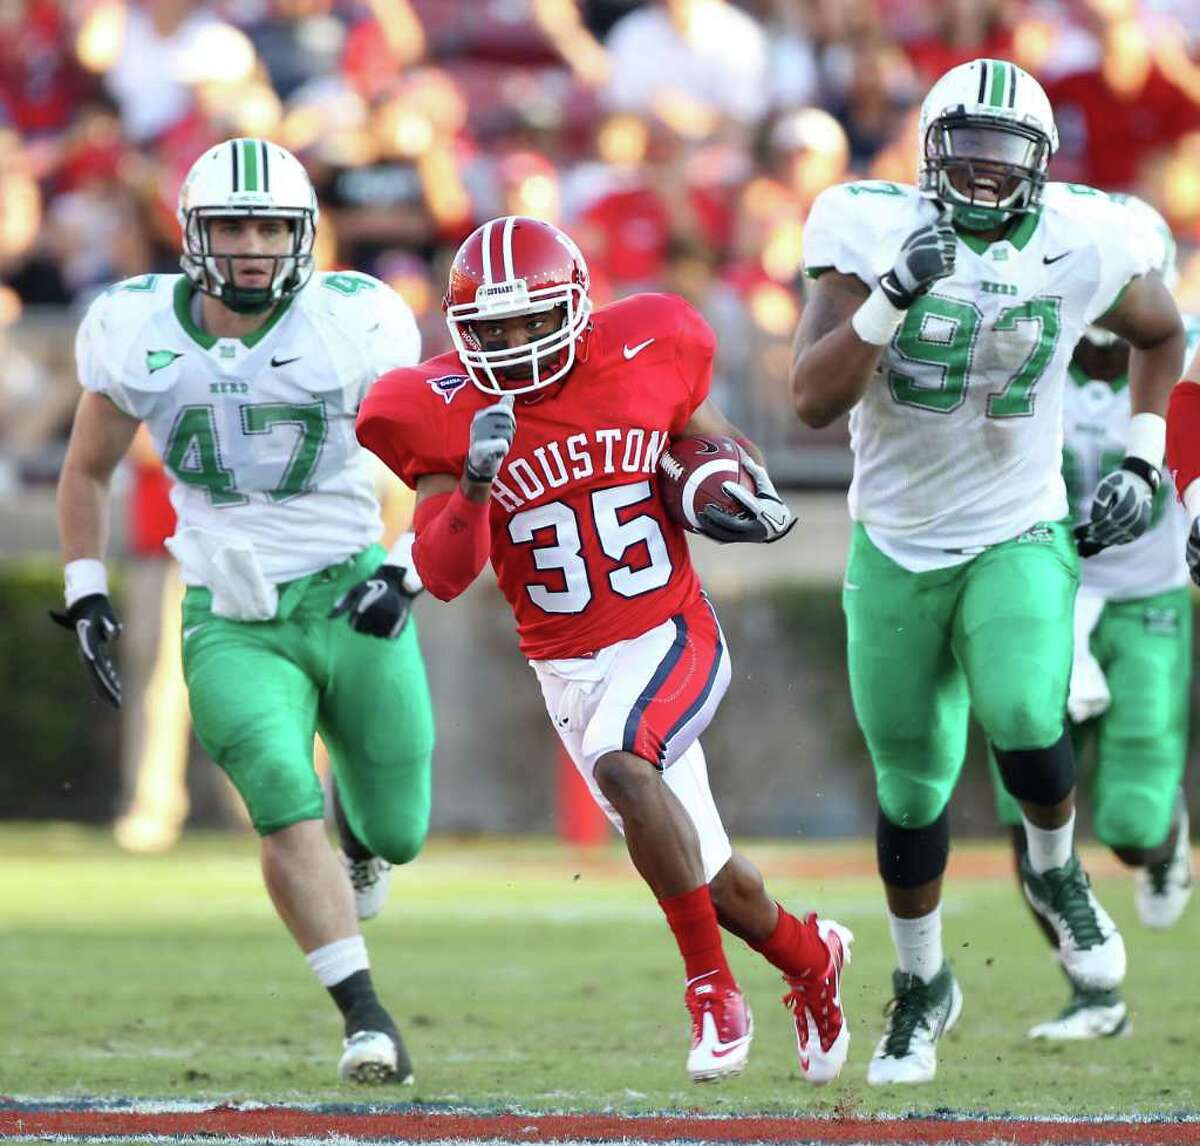 NICK de la TORRE: CHRONICLE THUNDERING AND LIGHTNING: Marshall's Tyson Gale (47) and Marques Aiken (97) find UH offensive players like Tyron Carrier will run you ragged if given the chance.